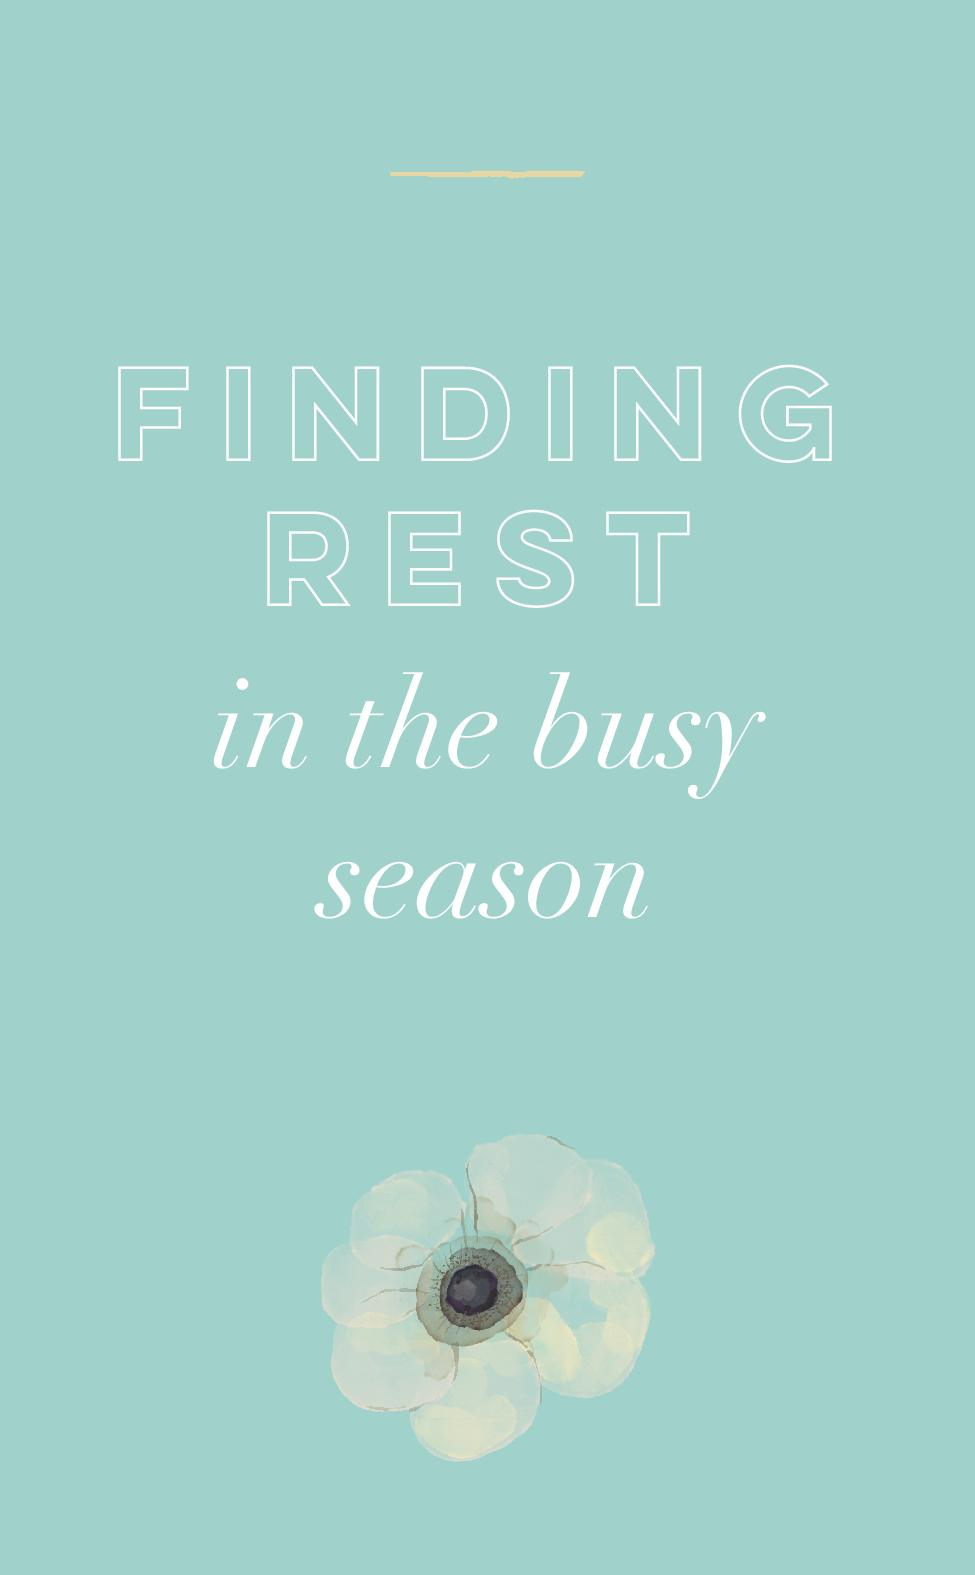 Finding Rest in the Busy Season.jpg